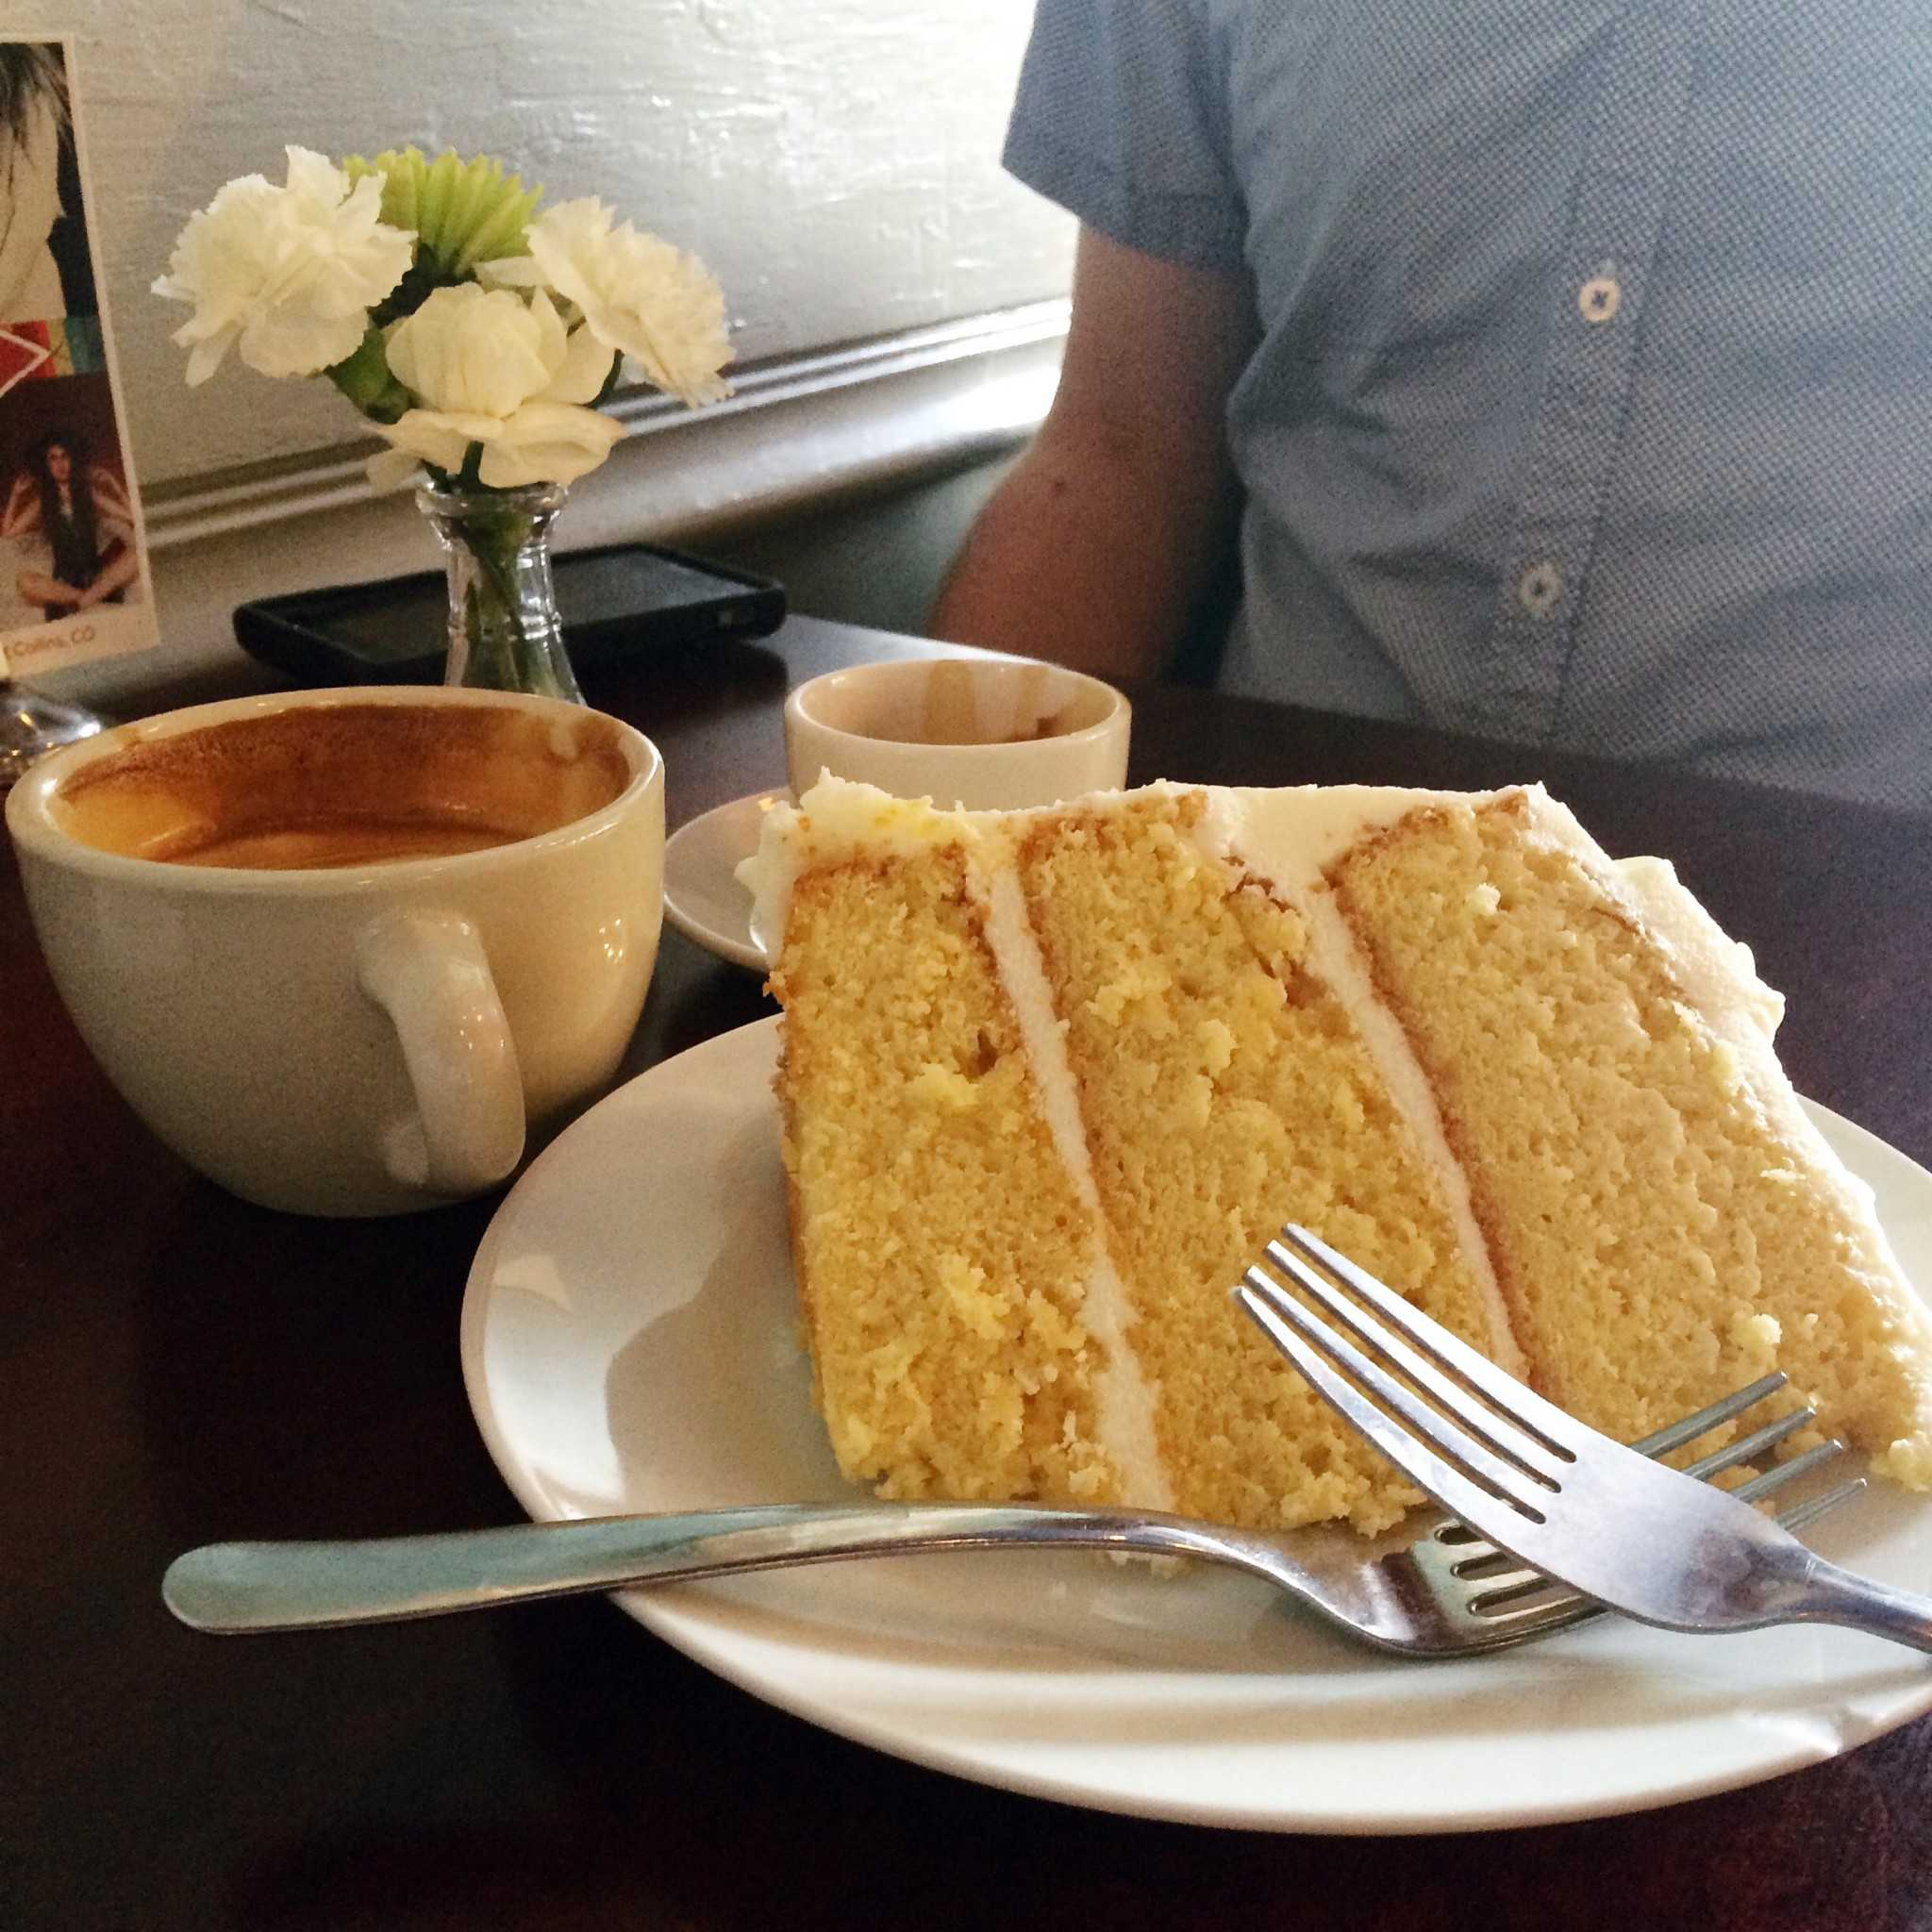 A slice of lemon cake along with a latte and an espresso. Photo by Rachael Worthington.